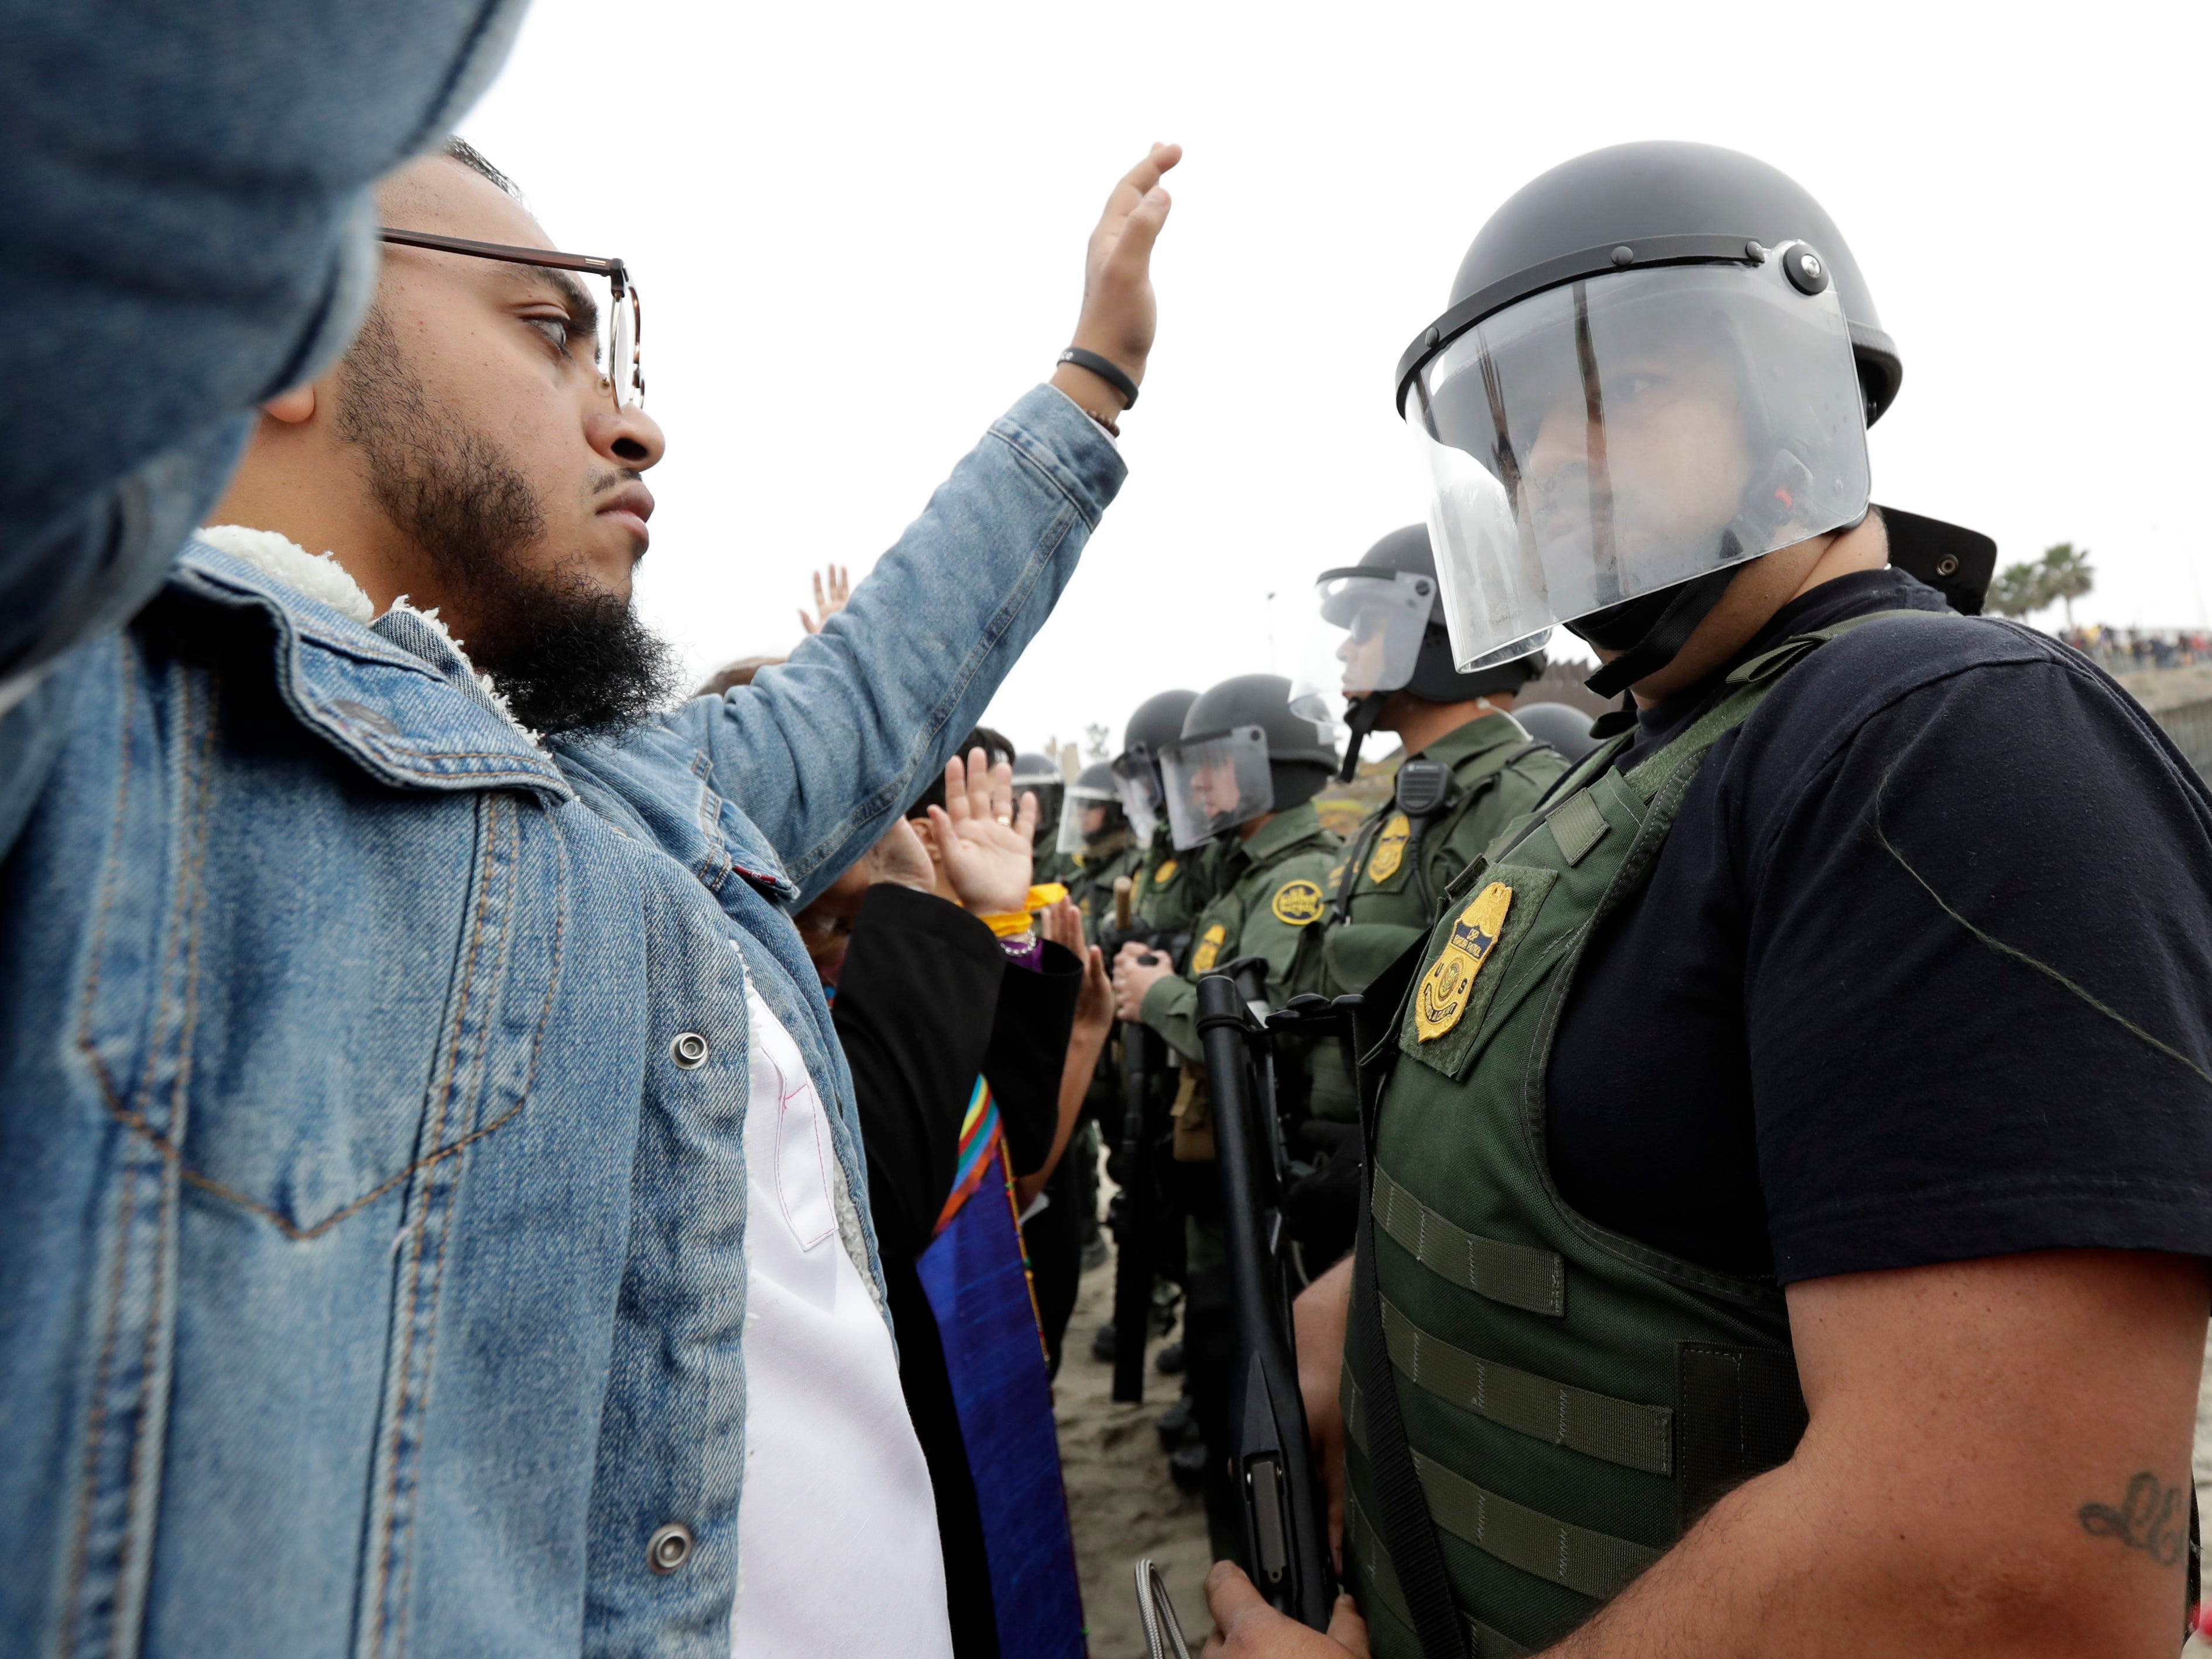 A man holds his hands in the air in front of a line of U.S. Border Patrol agents during a protest on Dec. 10, 2018, in San Diego.